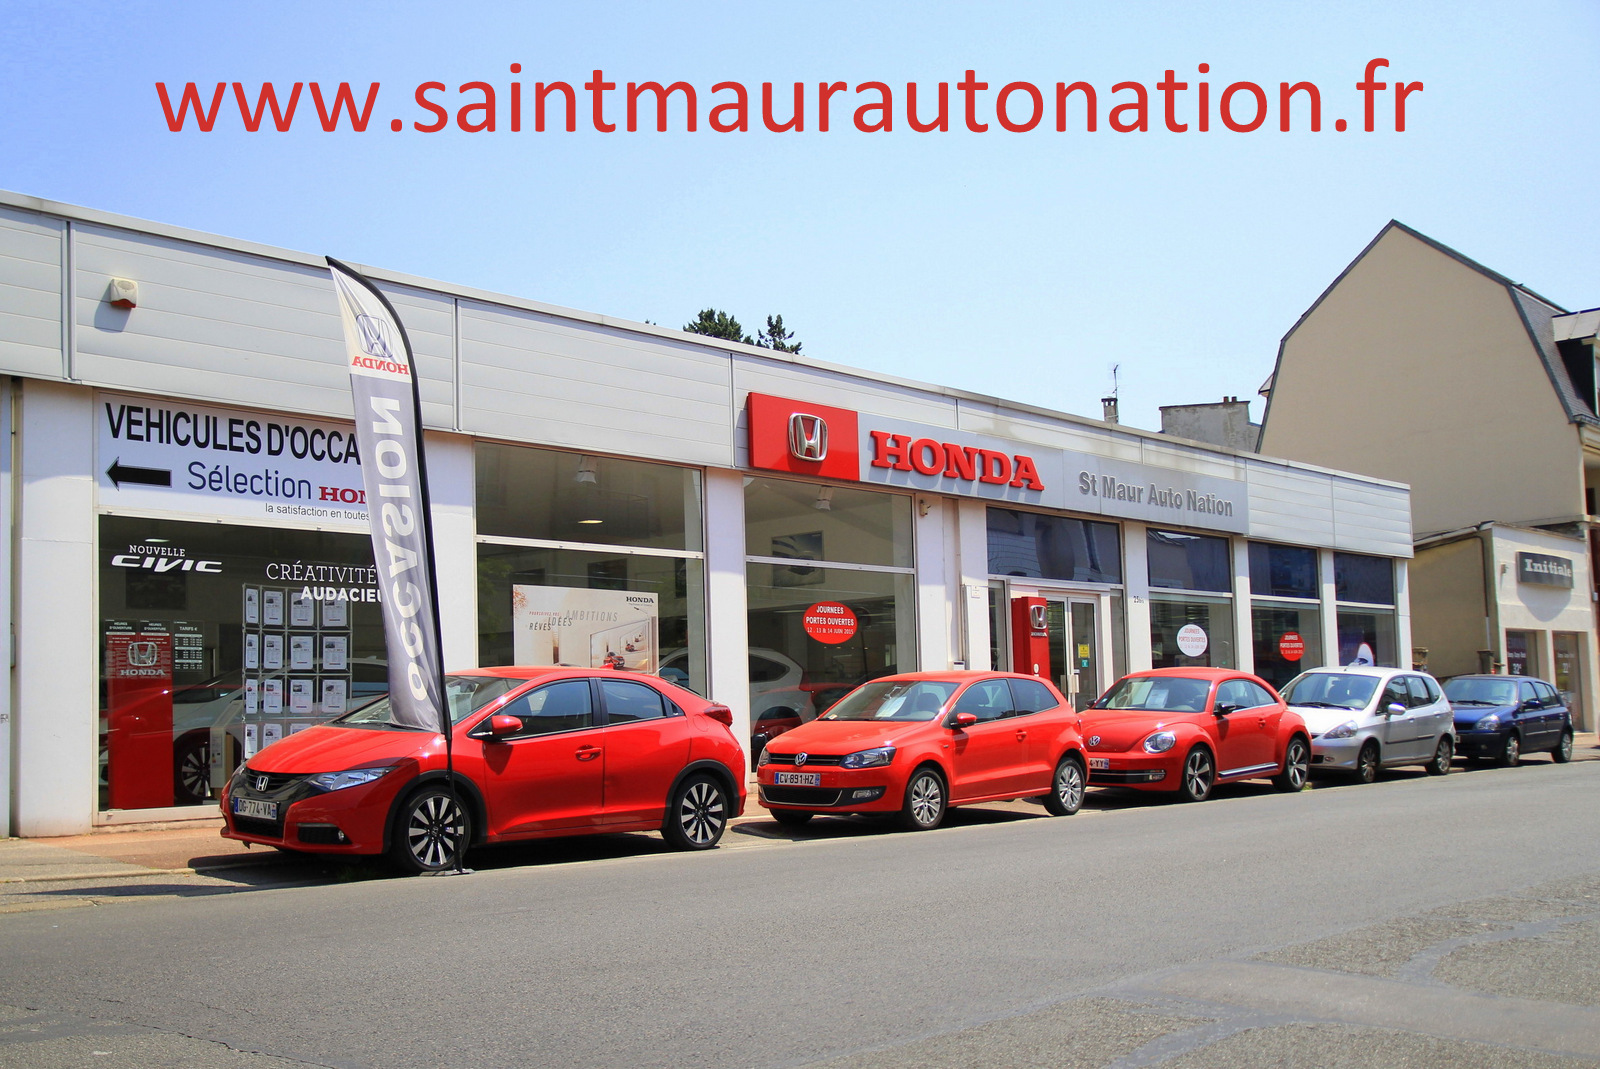 Vitrine Saint-Maur Auto Nation